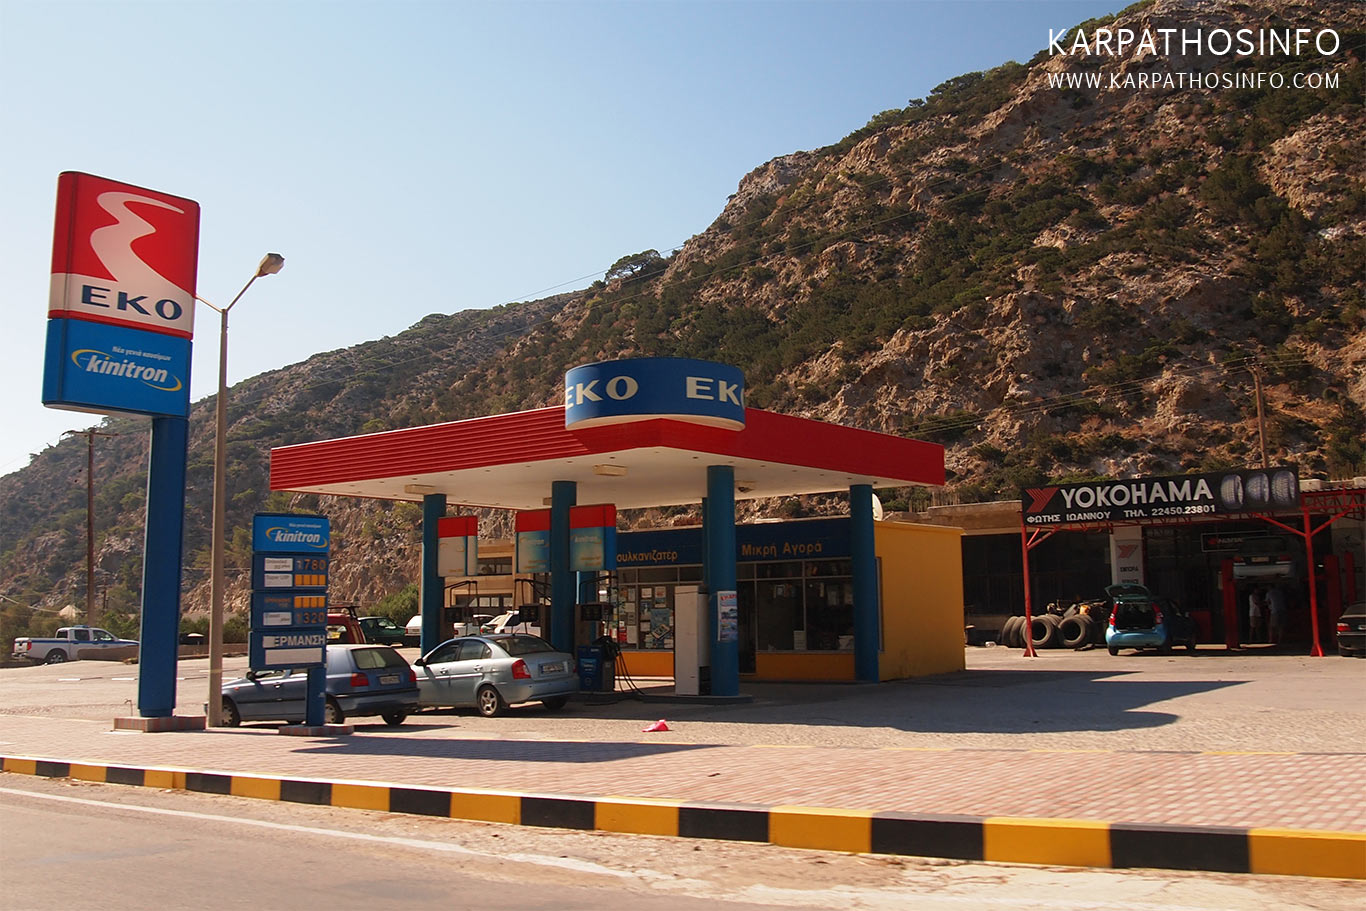 Petrol Station in Karpathos island, Greece